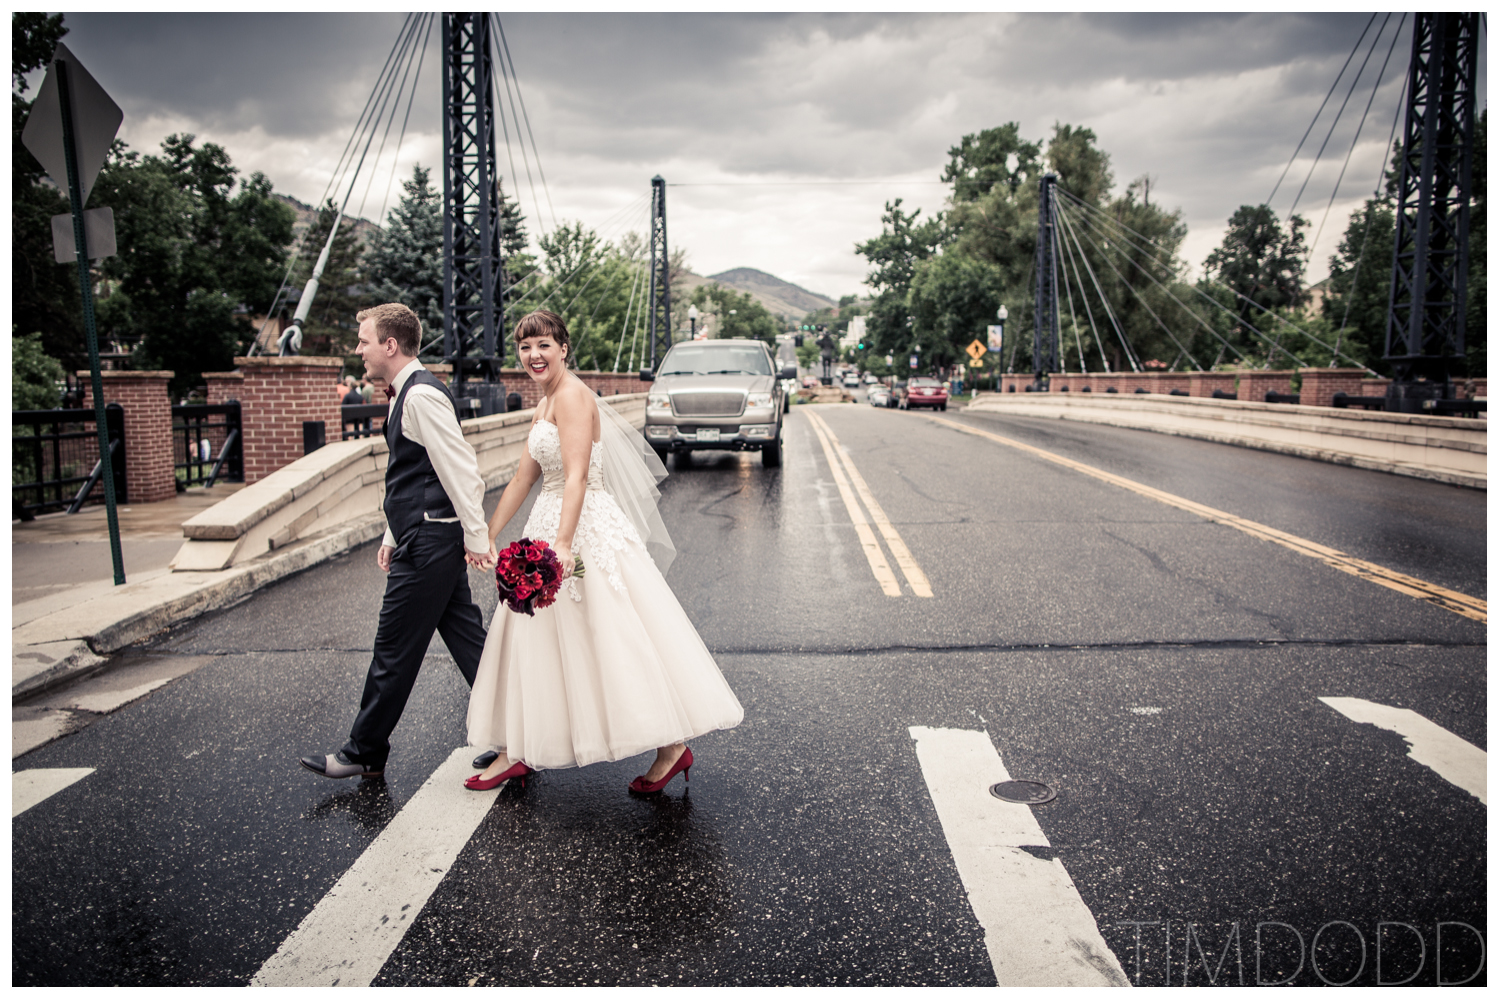 Dane and Amy – Wedding in Colorado